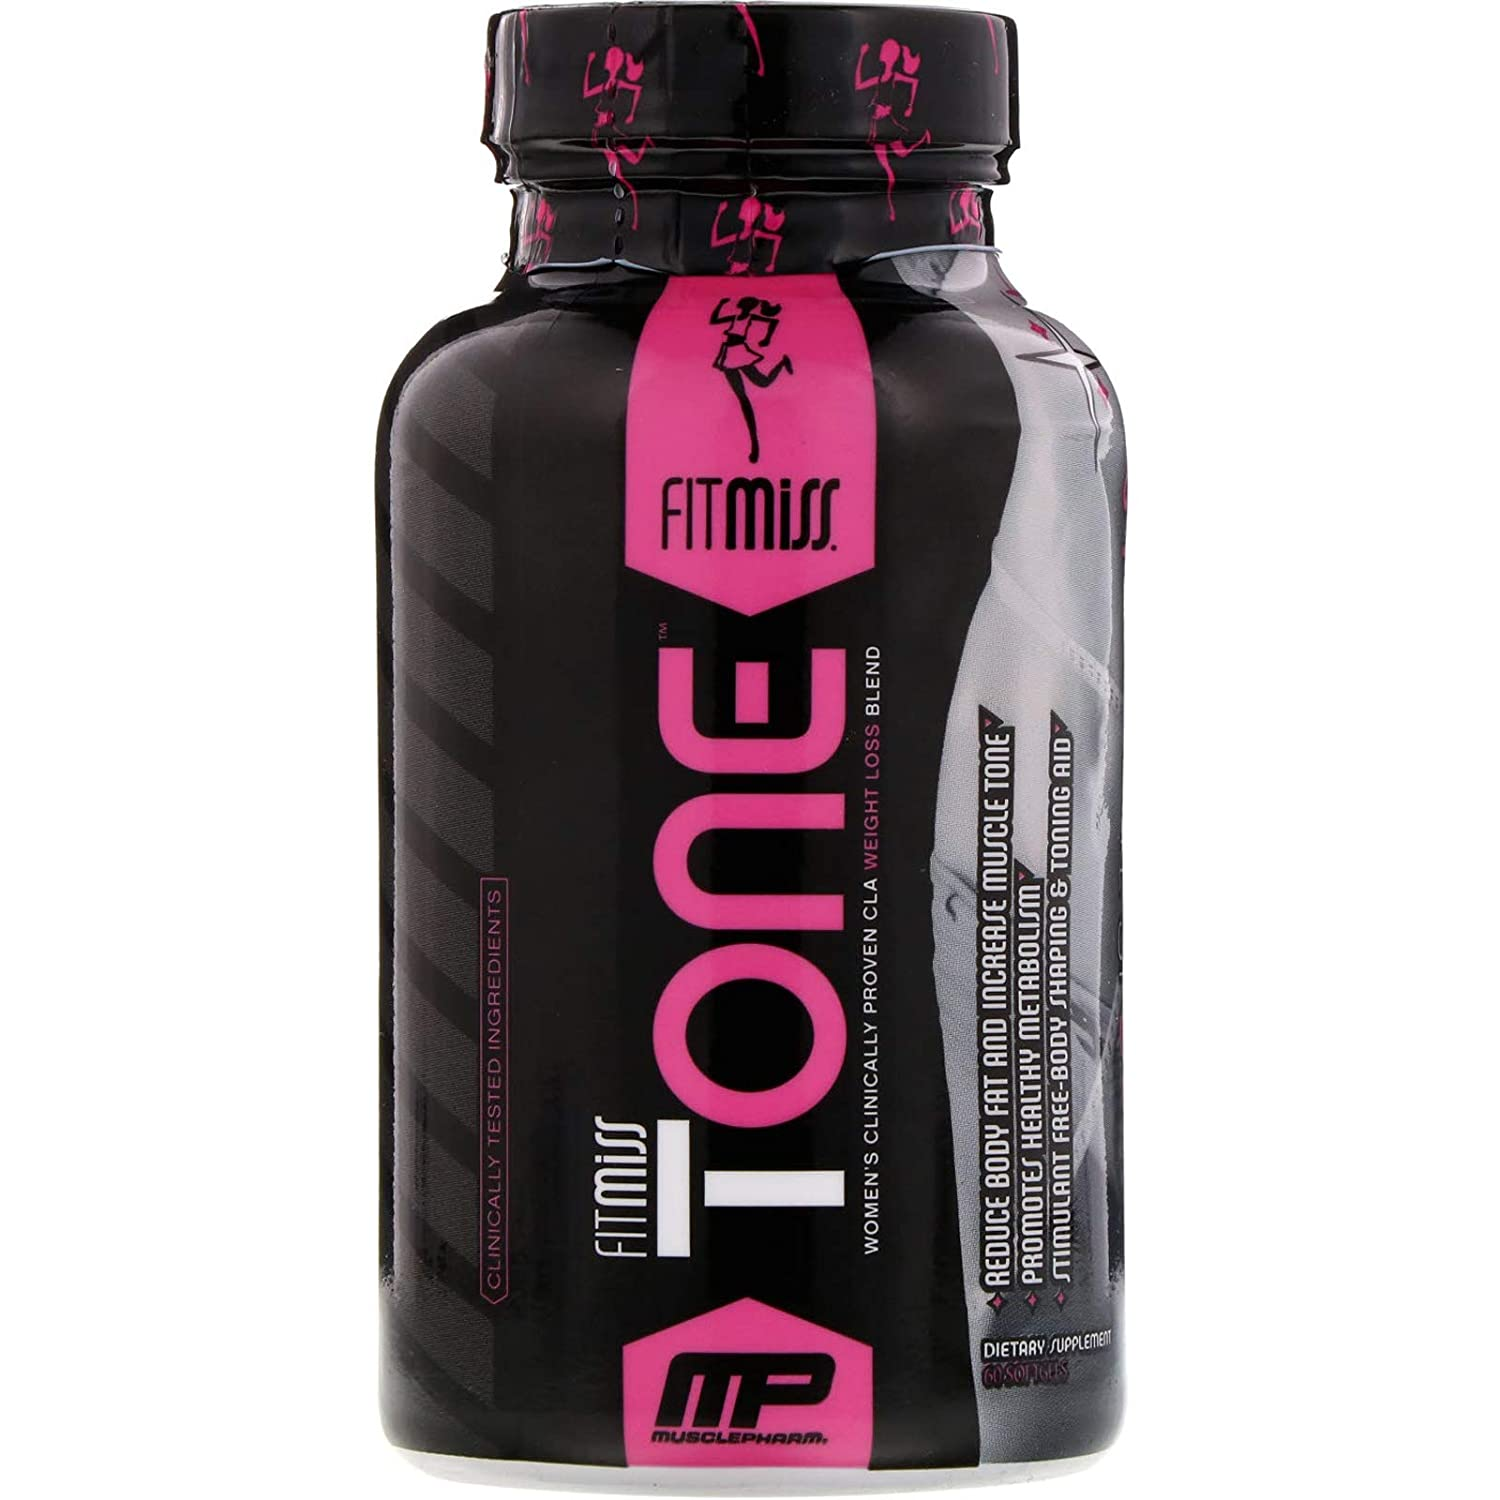 fd65f77a0 Amazon.com: FitMiss Tone, Women's STIMULANT FREE & Mid-Section Fat ...